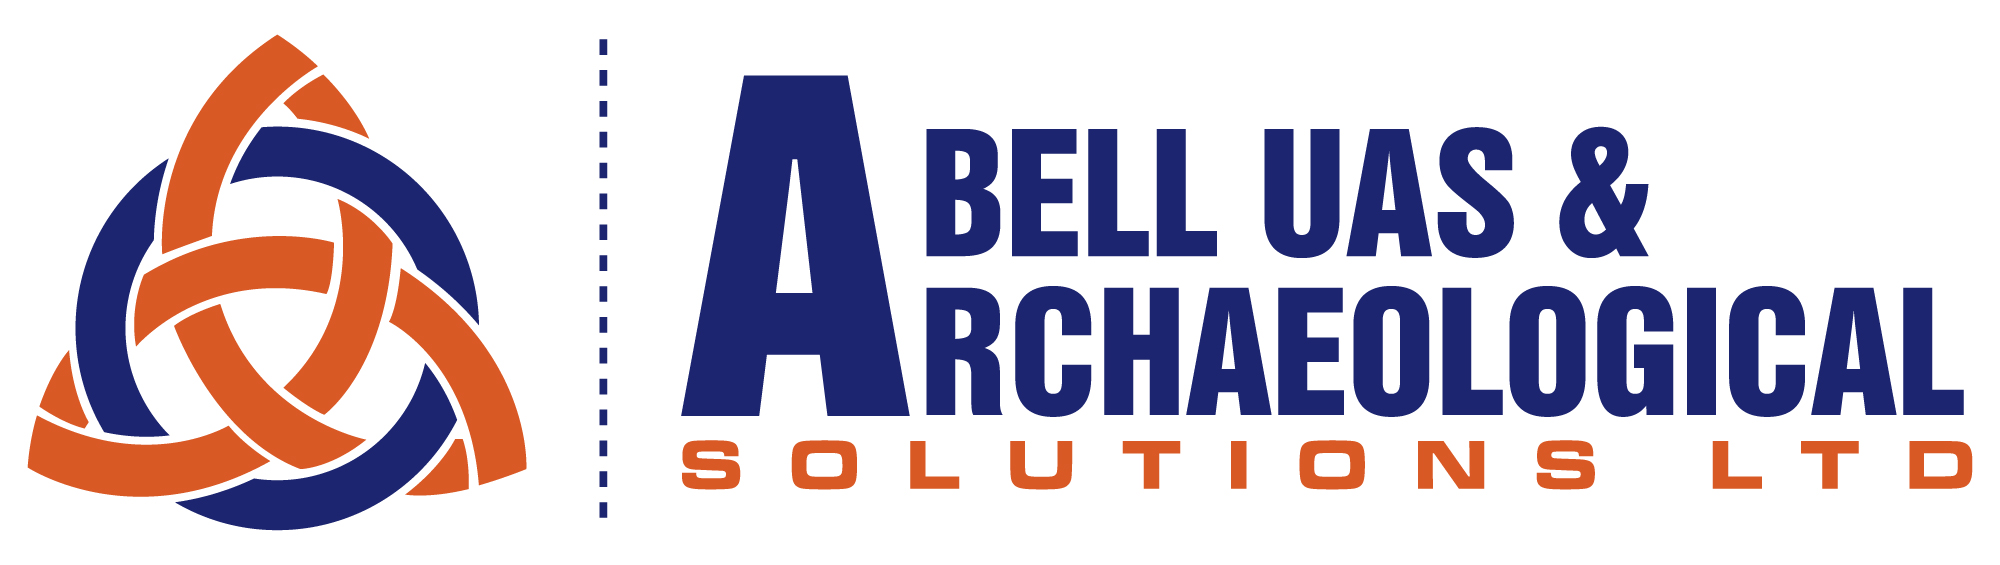 ABELL UAS & ARCHAEOLOGICAL SOLUTIONS LTD